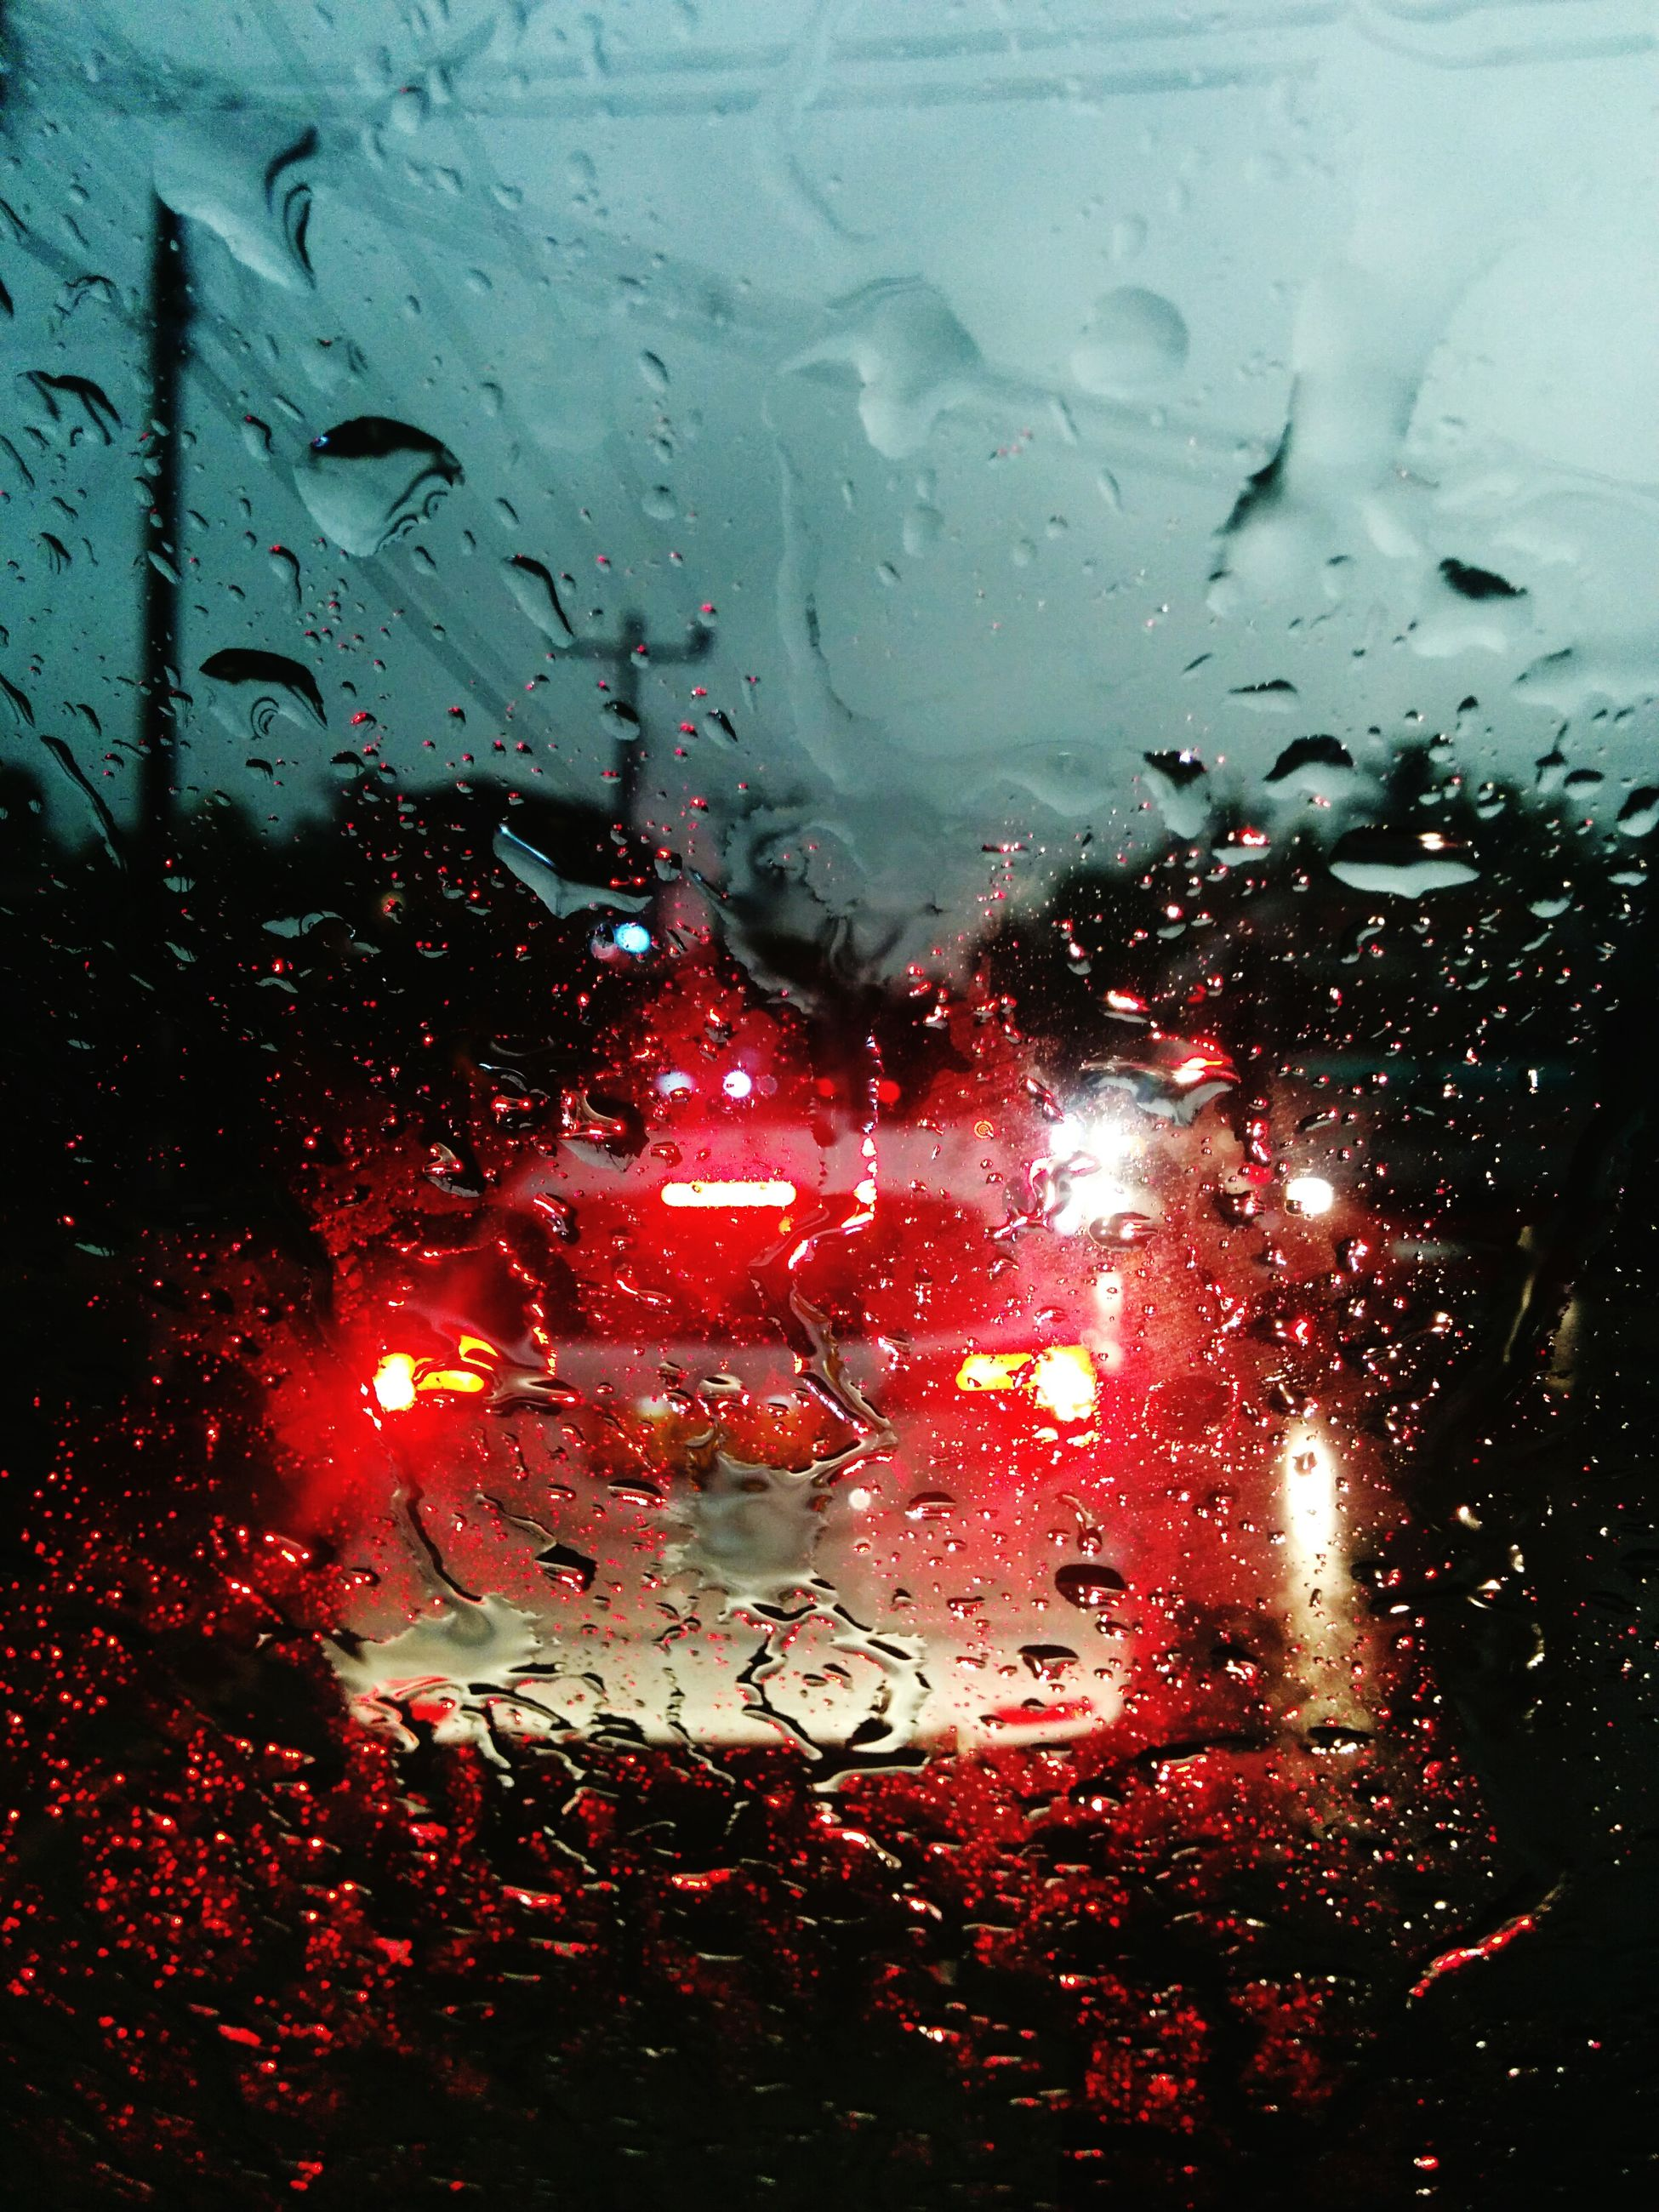 drop, wet, window, indoors, transparent, rain, glass - material, water, full frame, weather, season, raindrop, backgrounds, glass, close-up, water drop, droplet, car, focus on foreground, monsoon